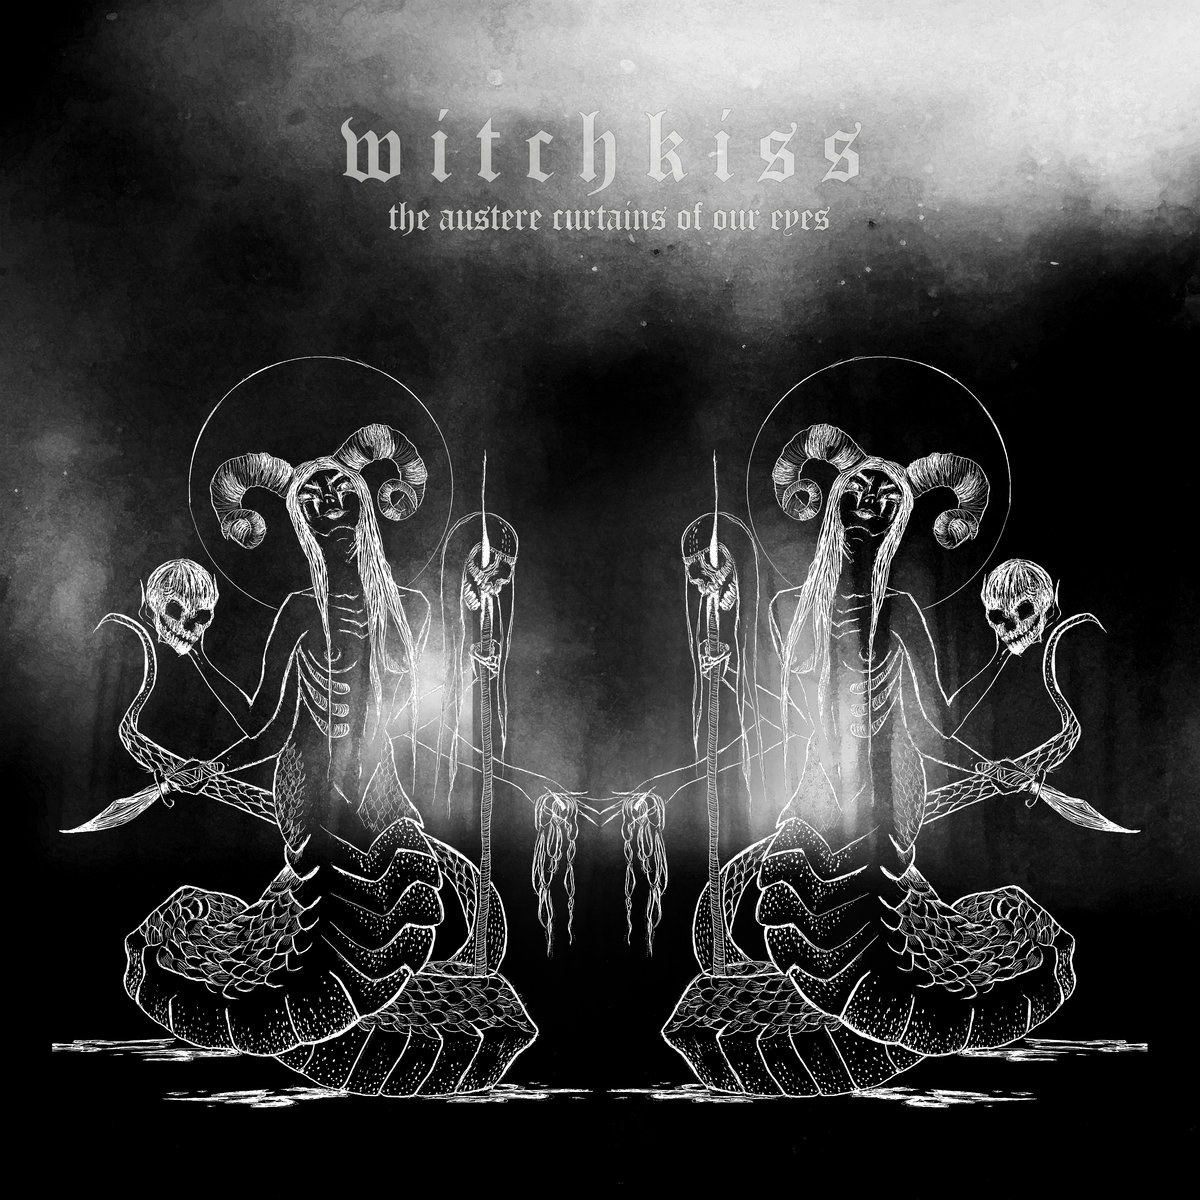 witchkiss the austere curtains of our eyes